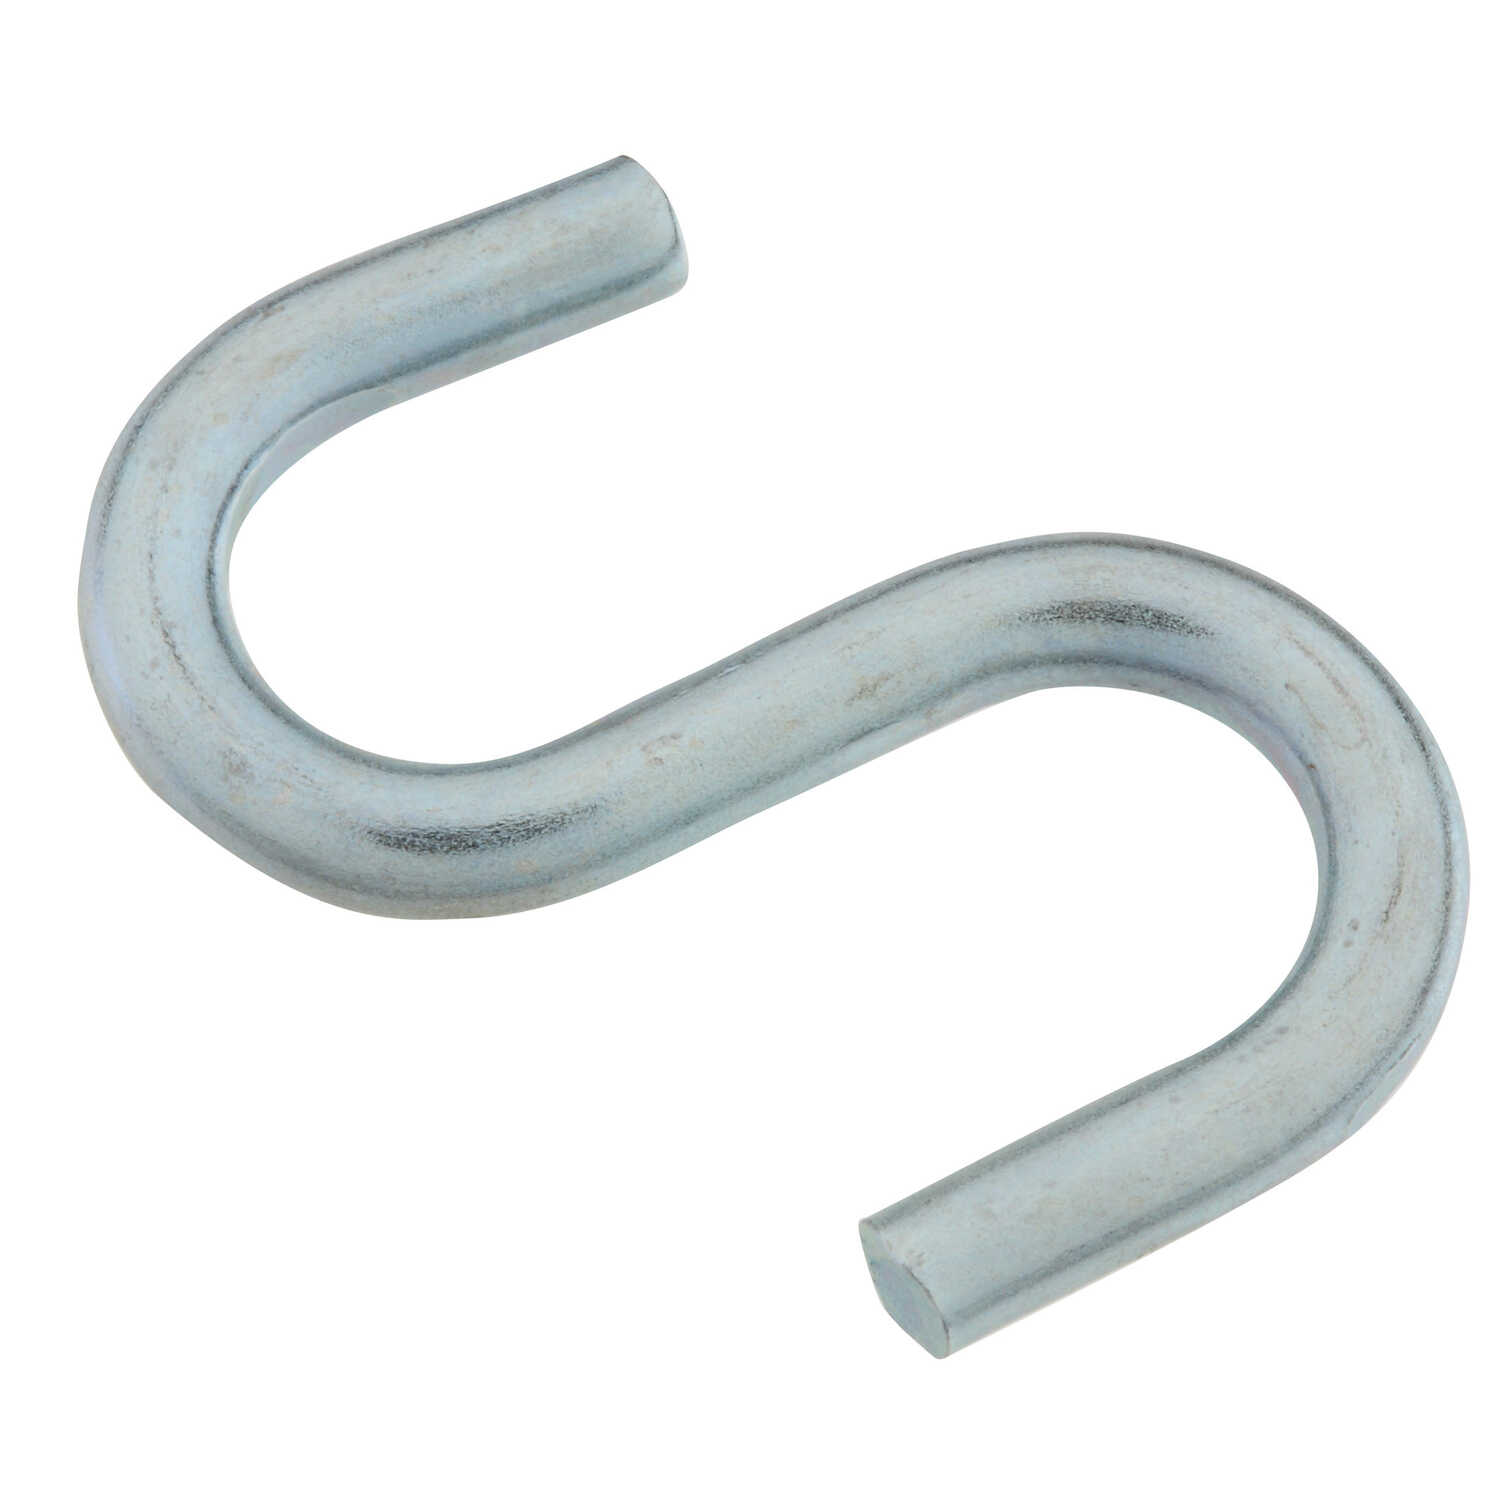 National Hardware  Jumbo  Silver  Steel  1-1/2 in. L Hook  45 lb. 4 pk